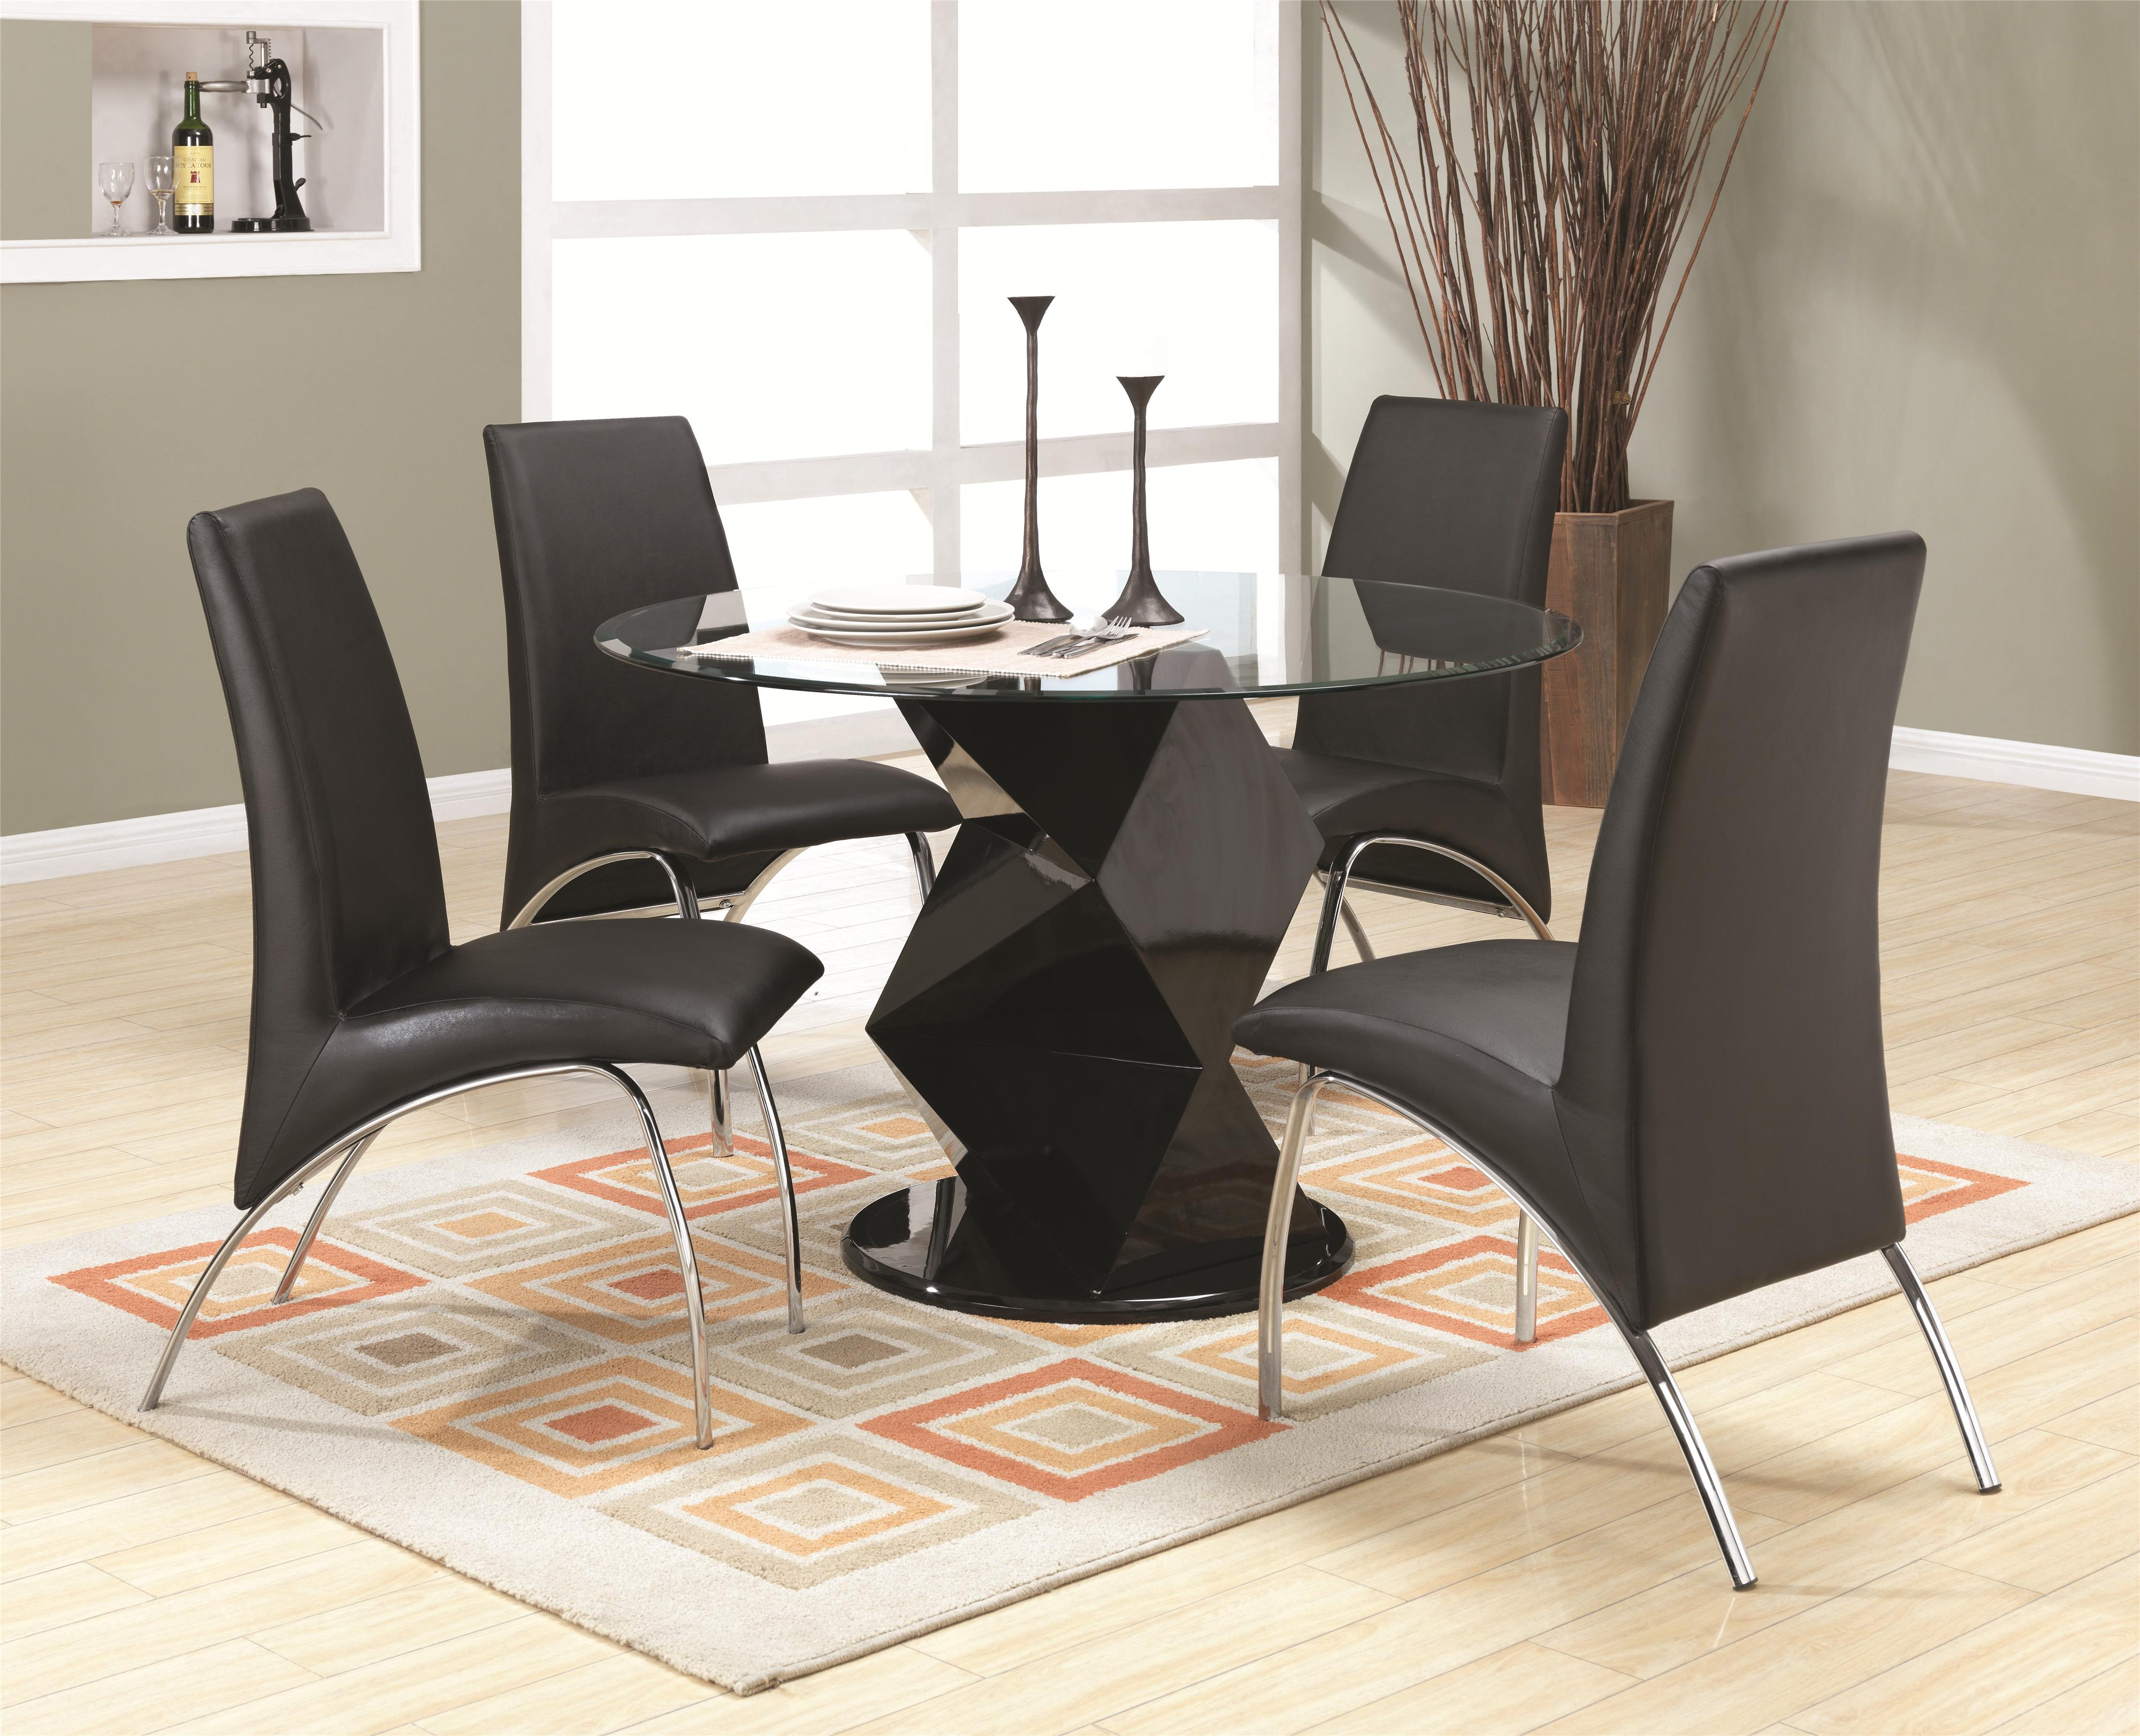 Coaster Ophelia Contemporary Five Piece Dining Set With Round Glass Top  Table   Michaelu0027s Furniture Warehouse   Dining 5 Piece Sets